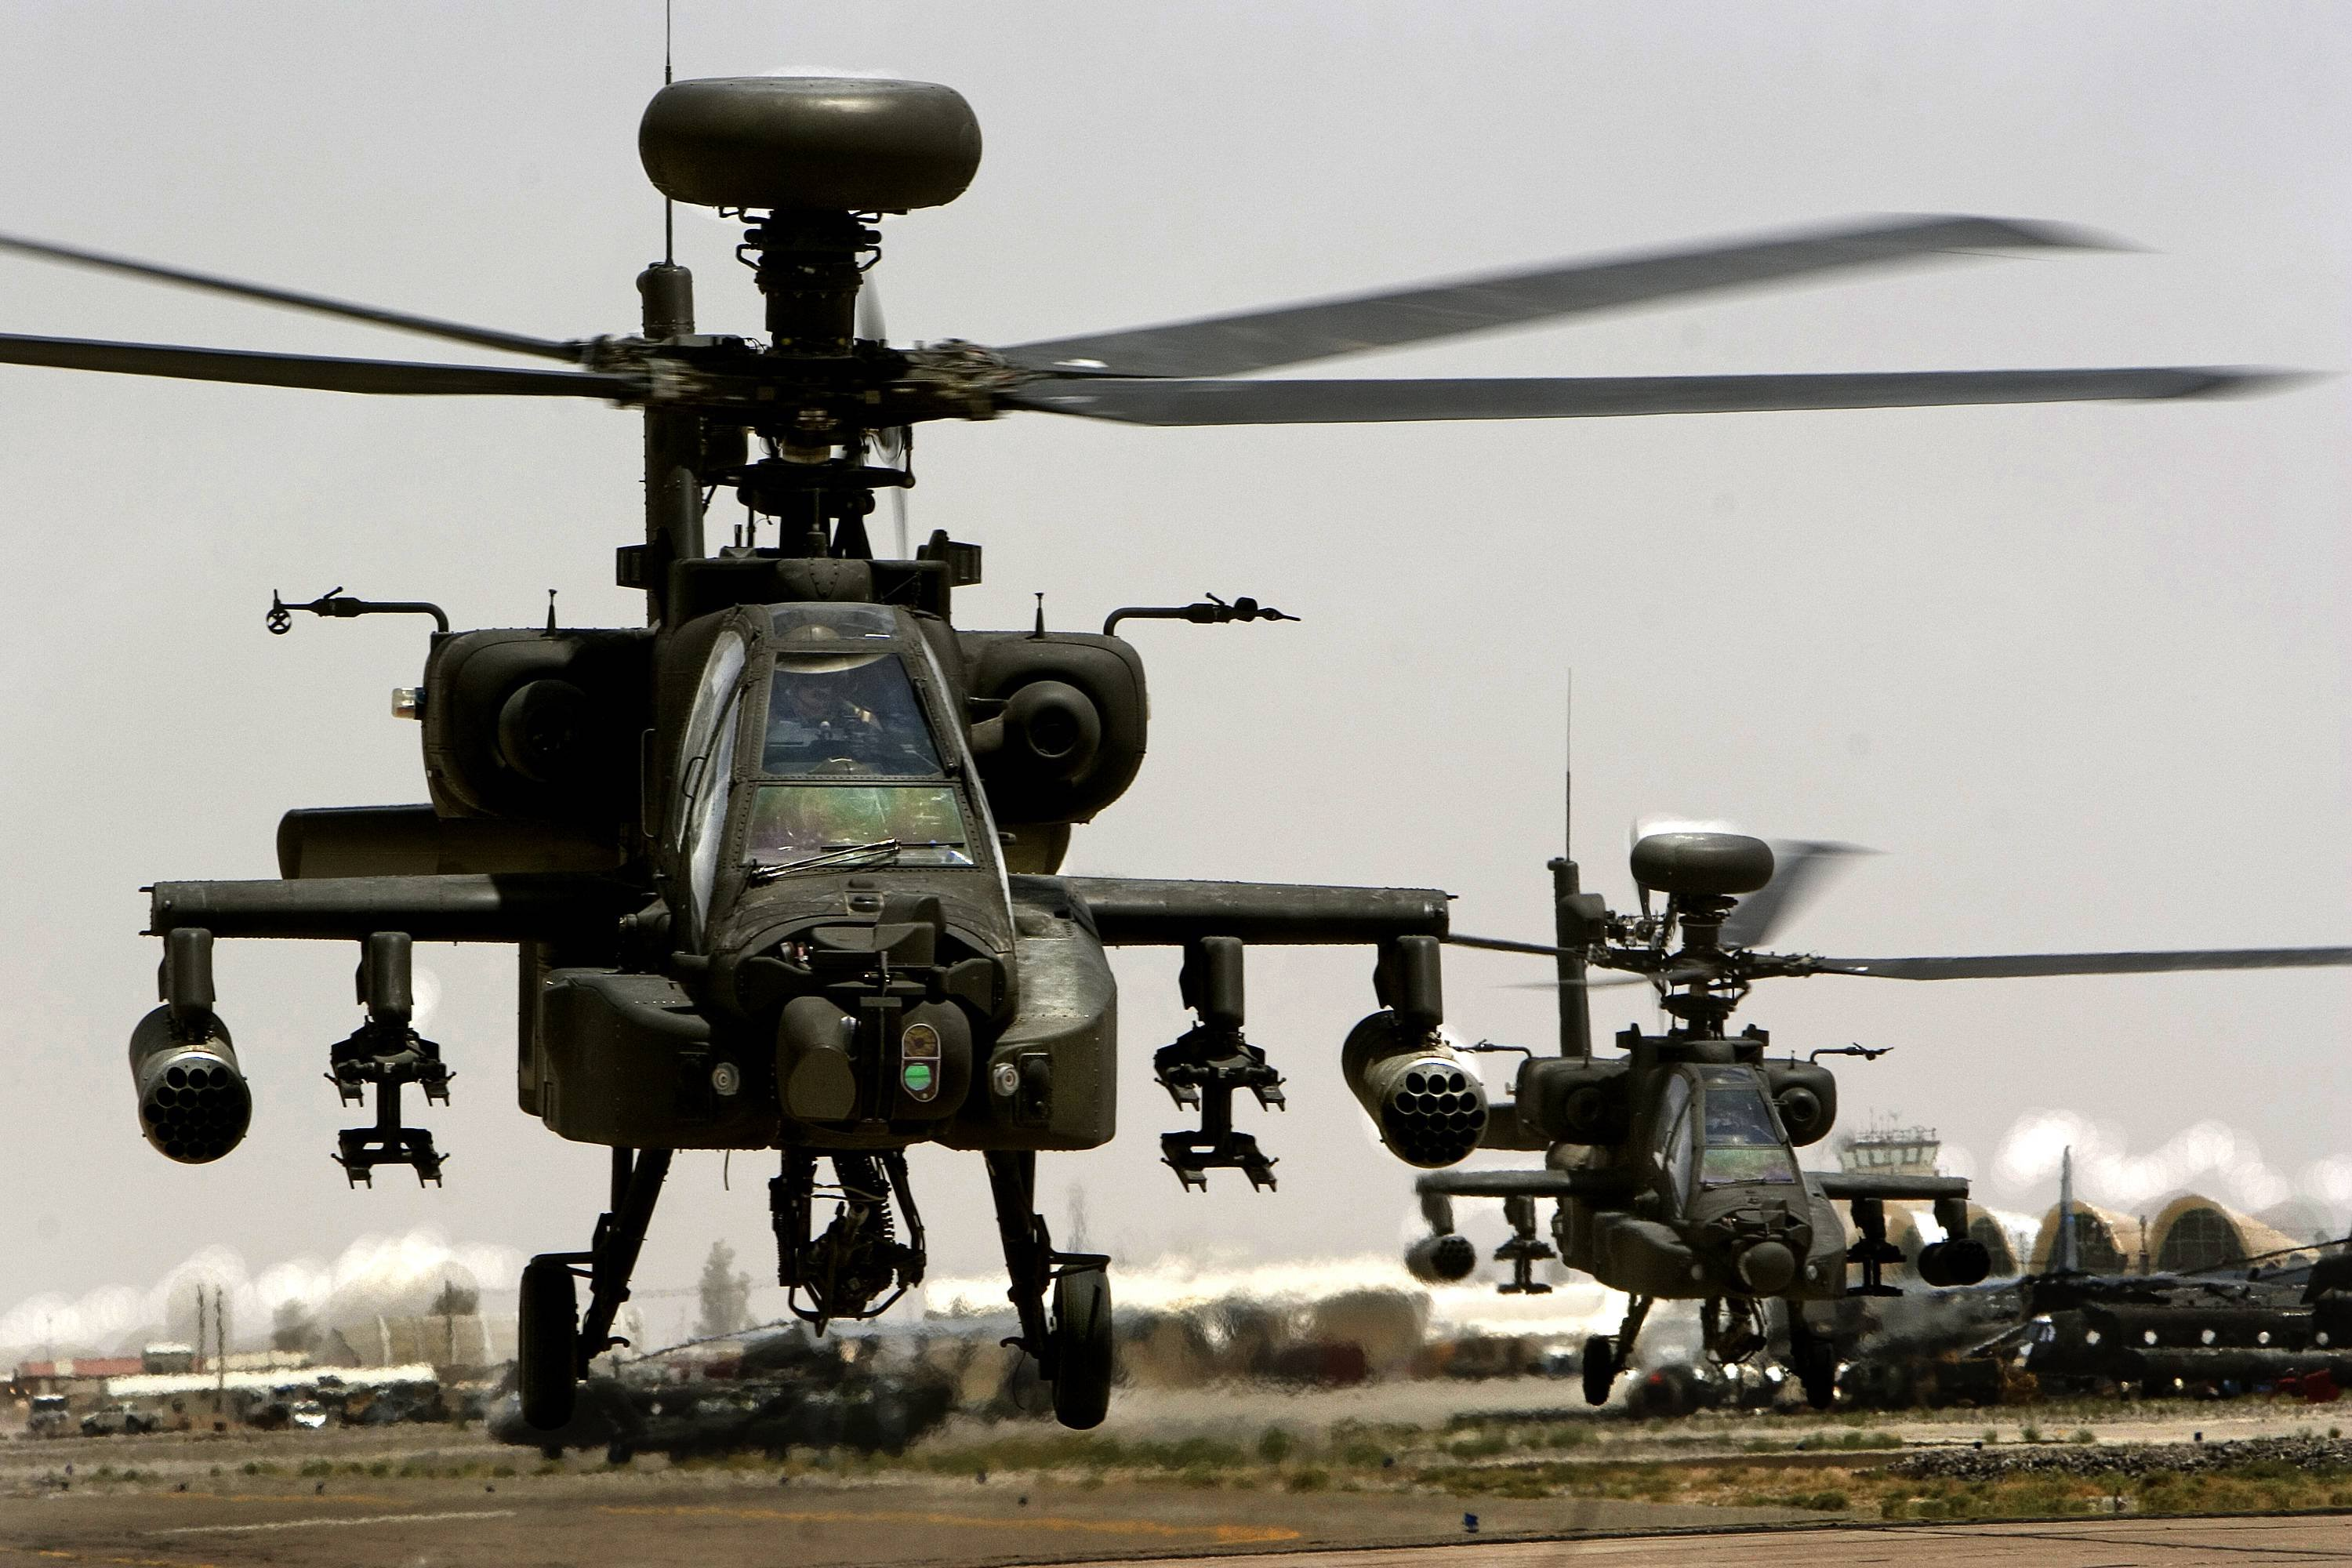 Apache Helicopter Wallpaper Desktop: Apache Helicopter Wallpaper